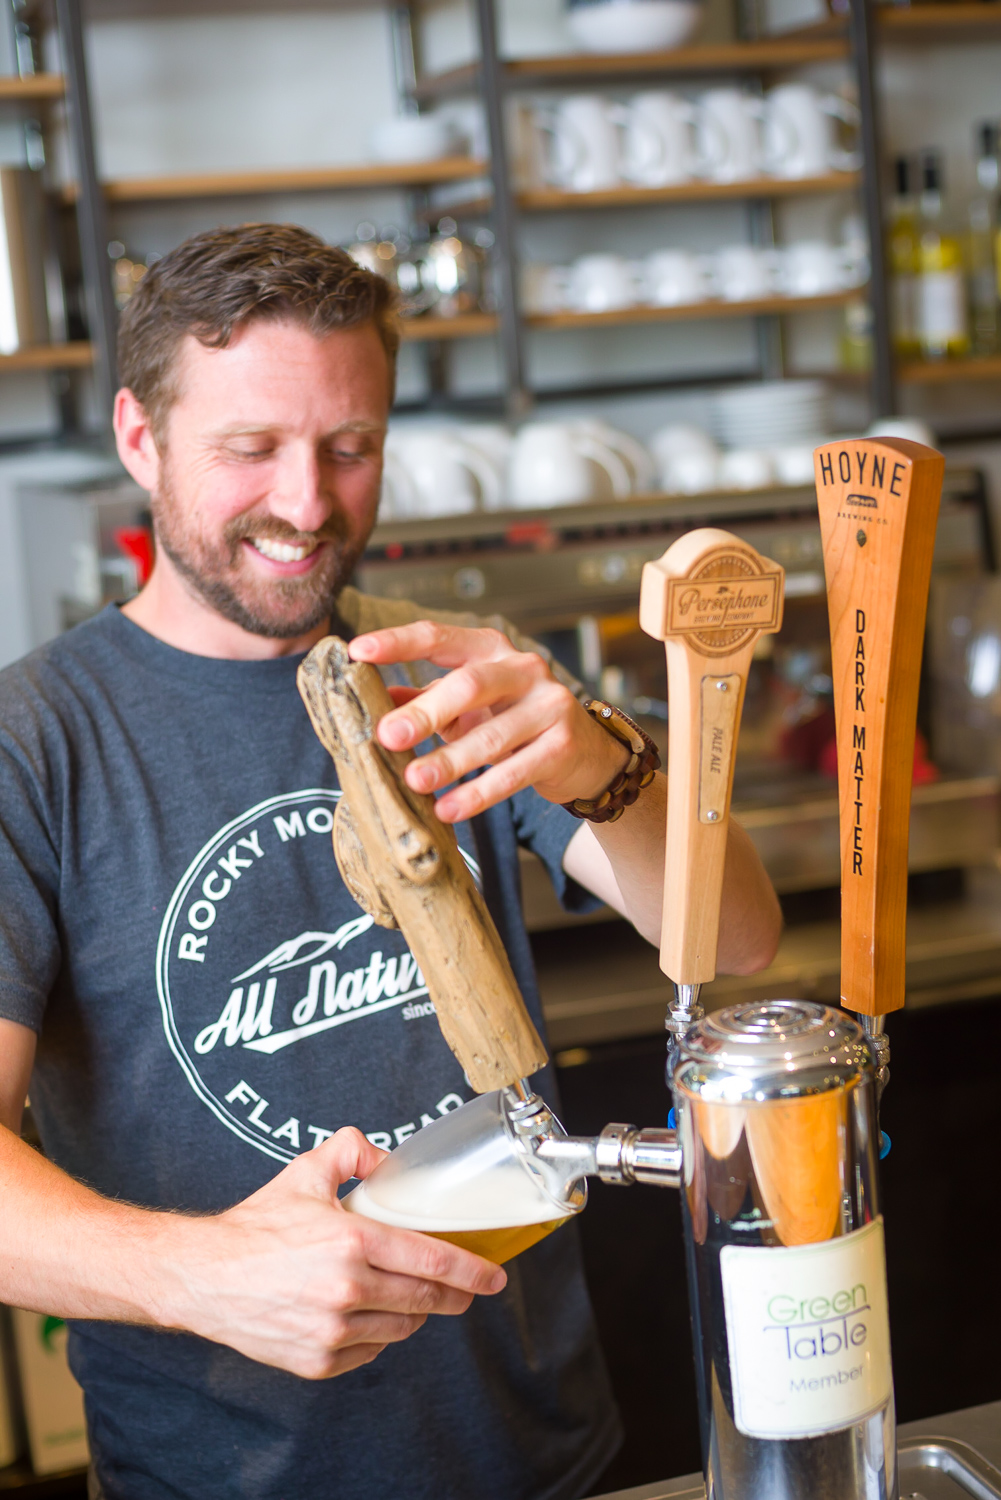 Smiling middle aged male bartender with beard pouring a beer from a tap lifestyle